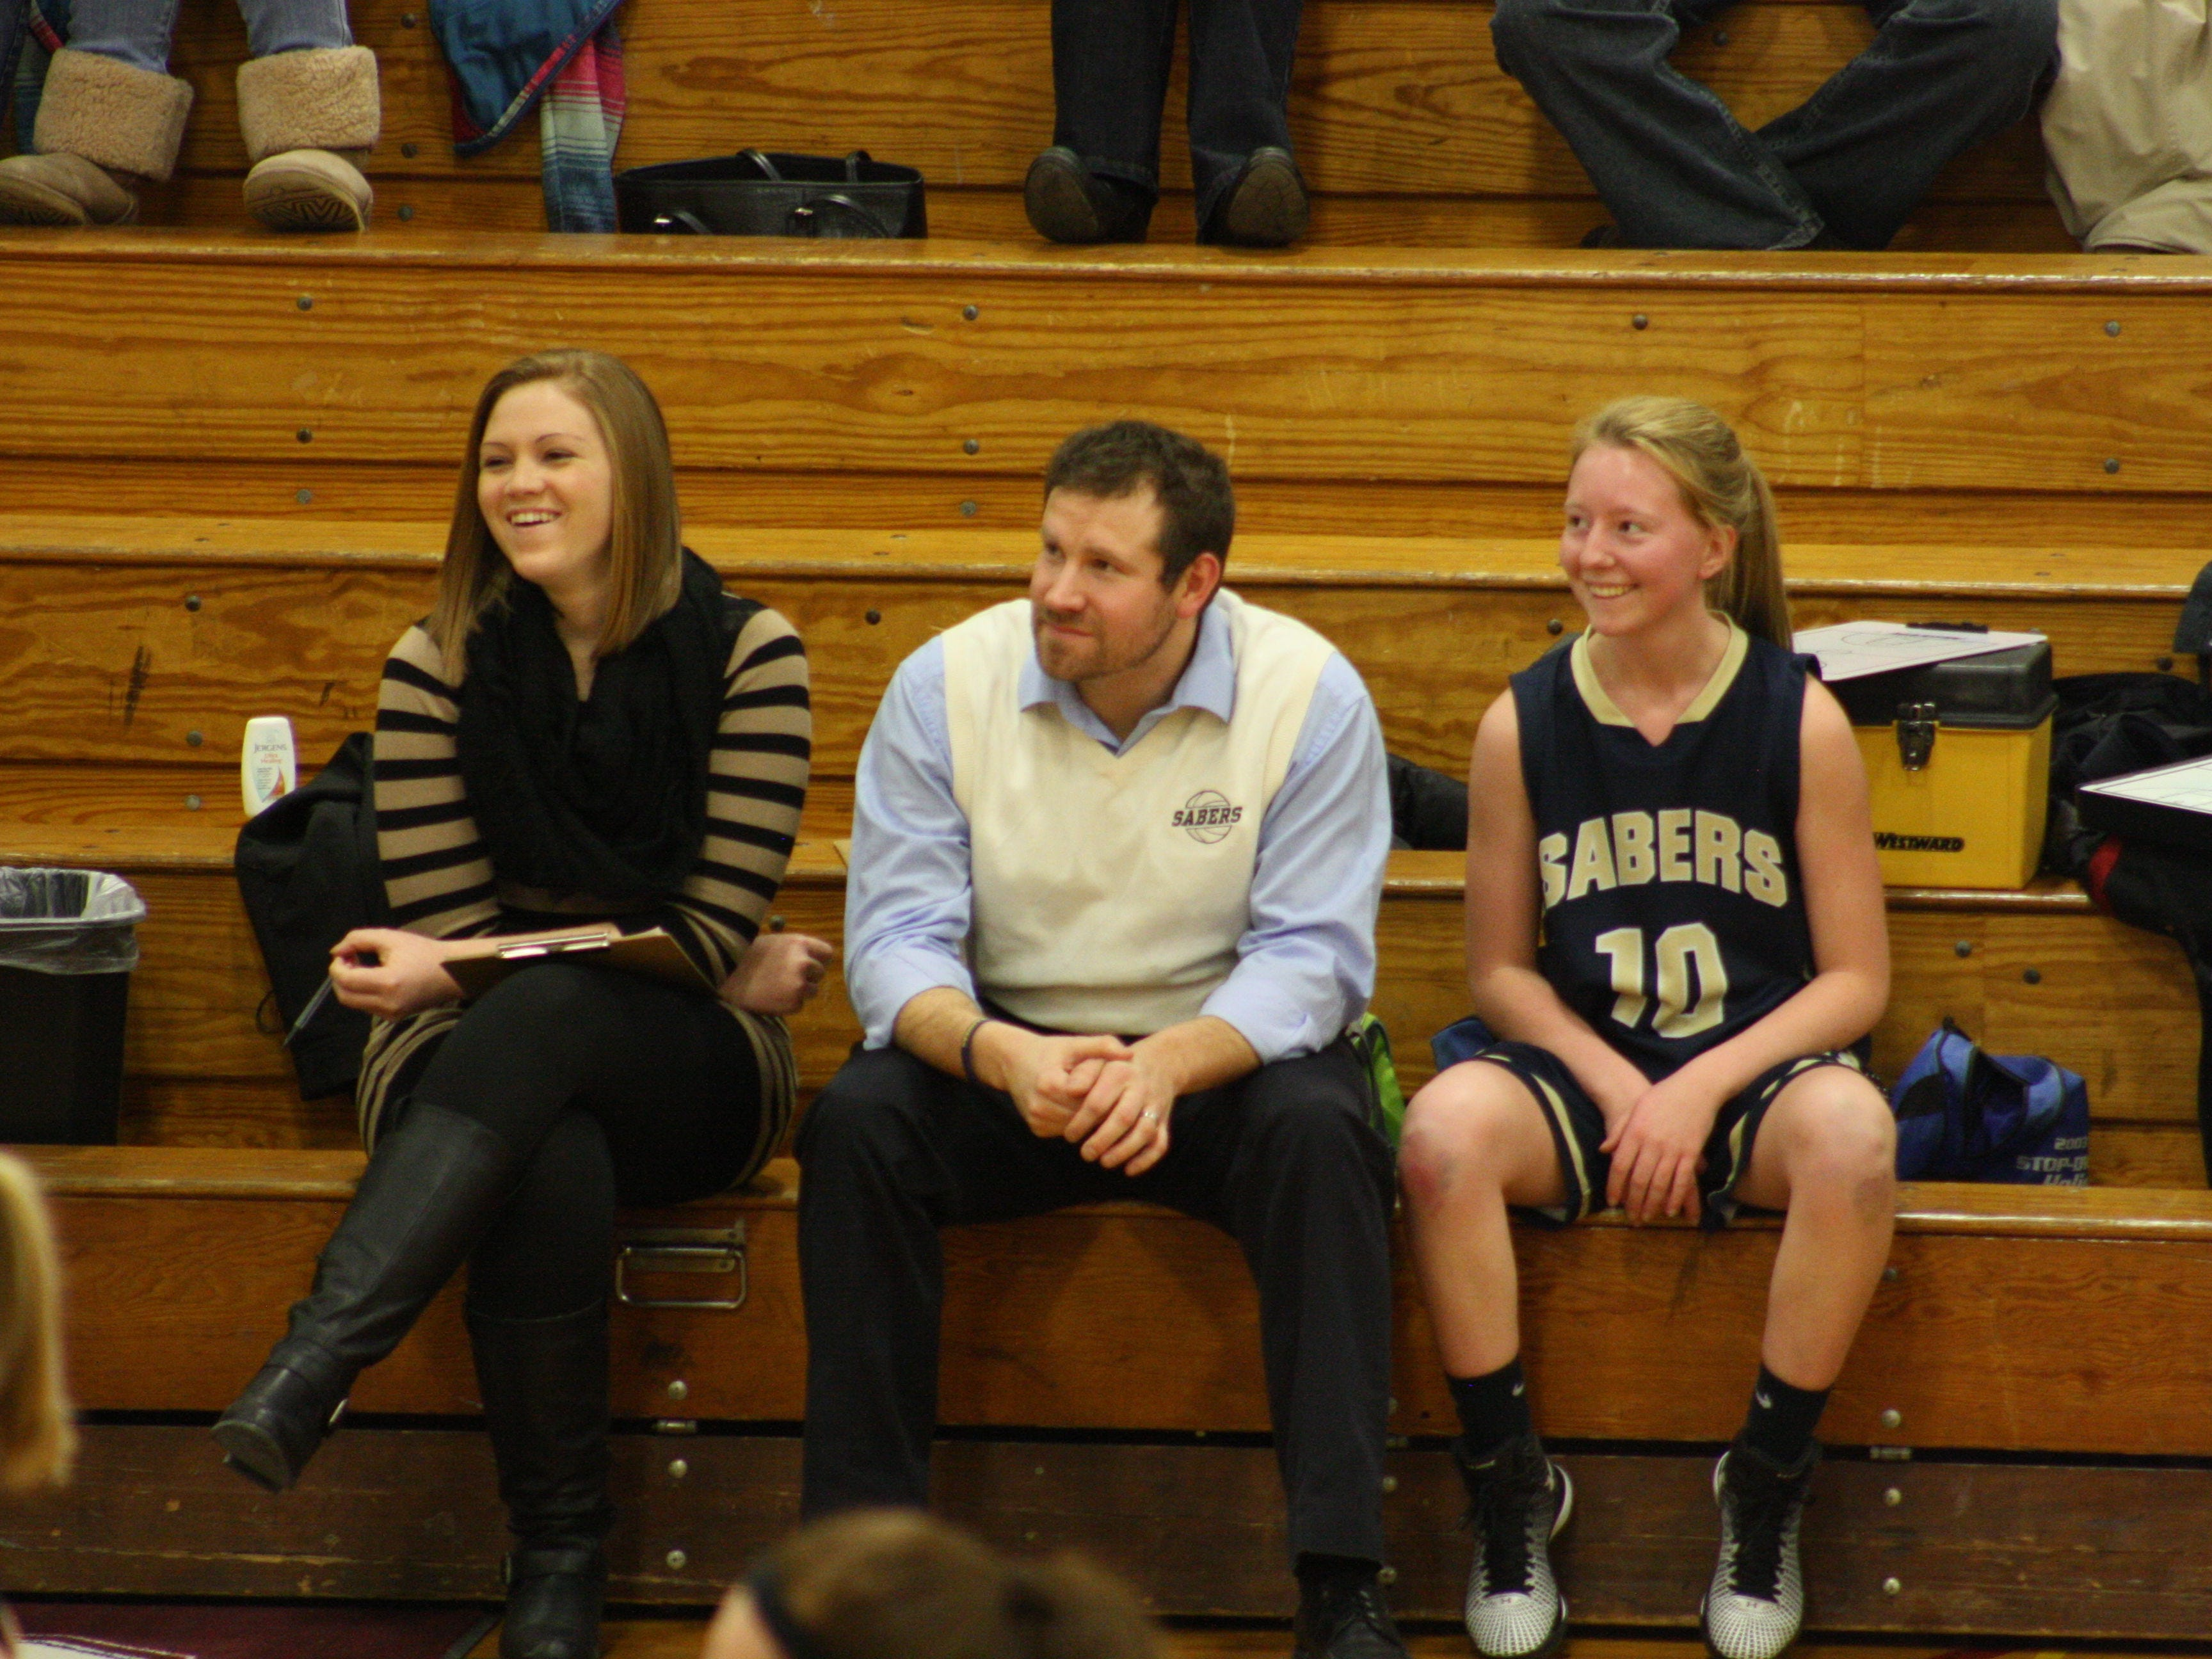 Susquehanna Valley girls basketball coach Chad Freije, center, looks on during a Dec. 23 game at Oneonta.